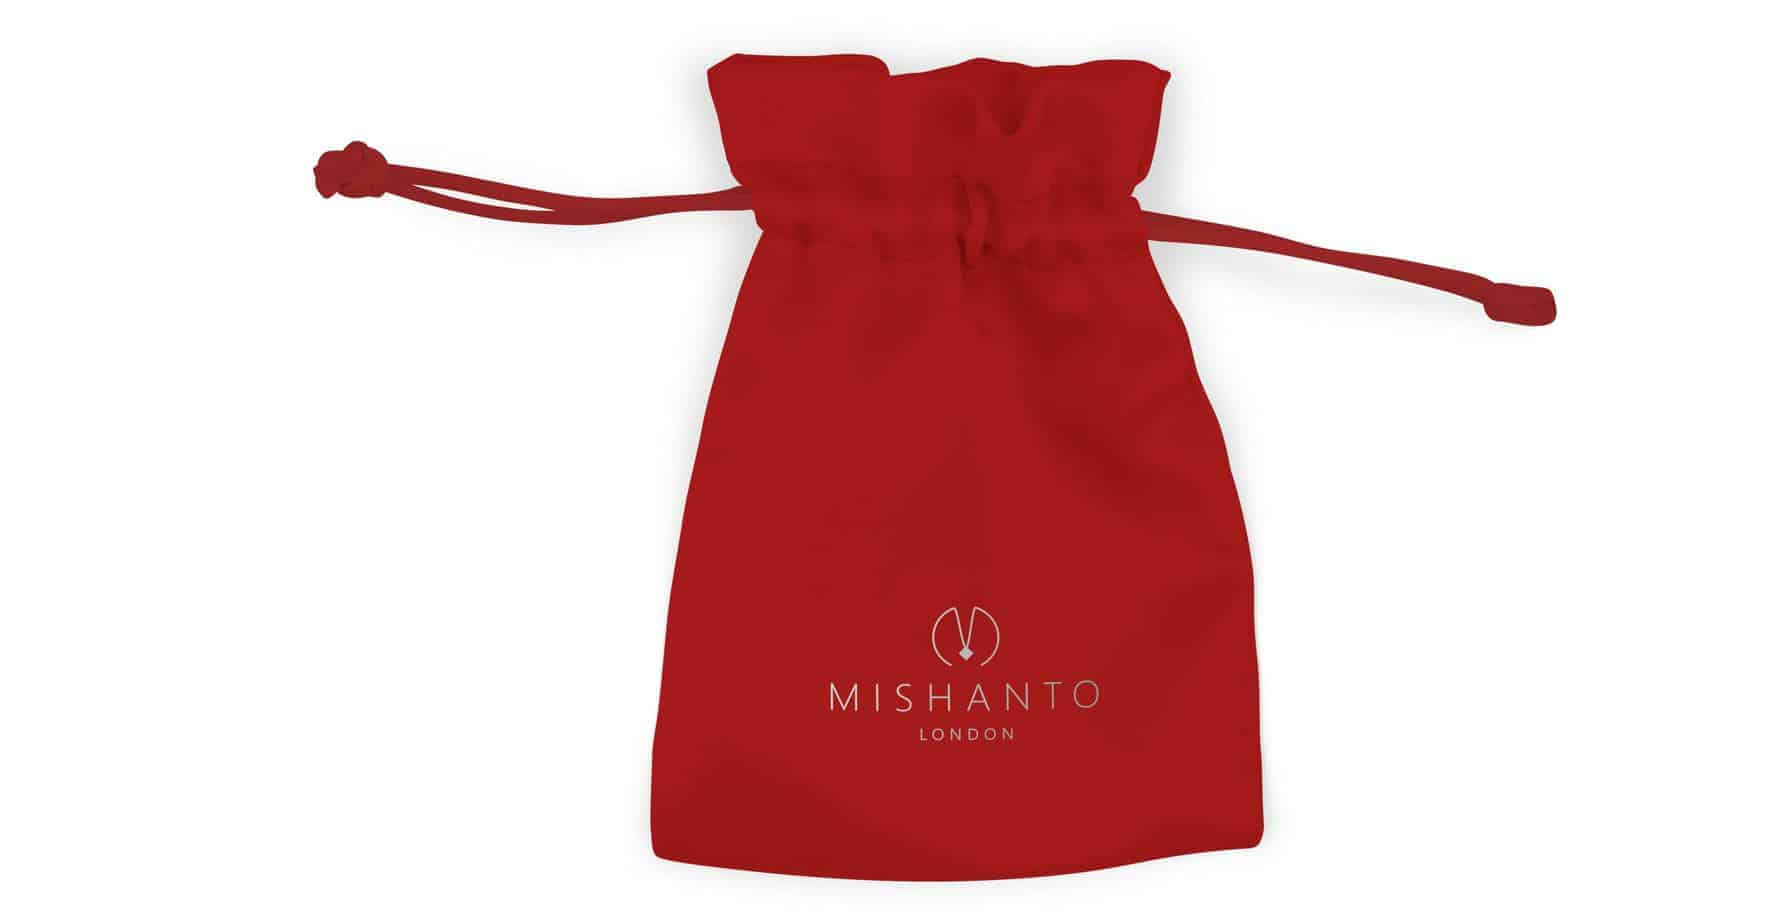 Mishanto London Red White Personalised Jewellery Bags